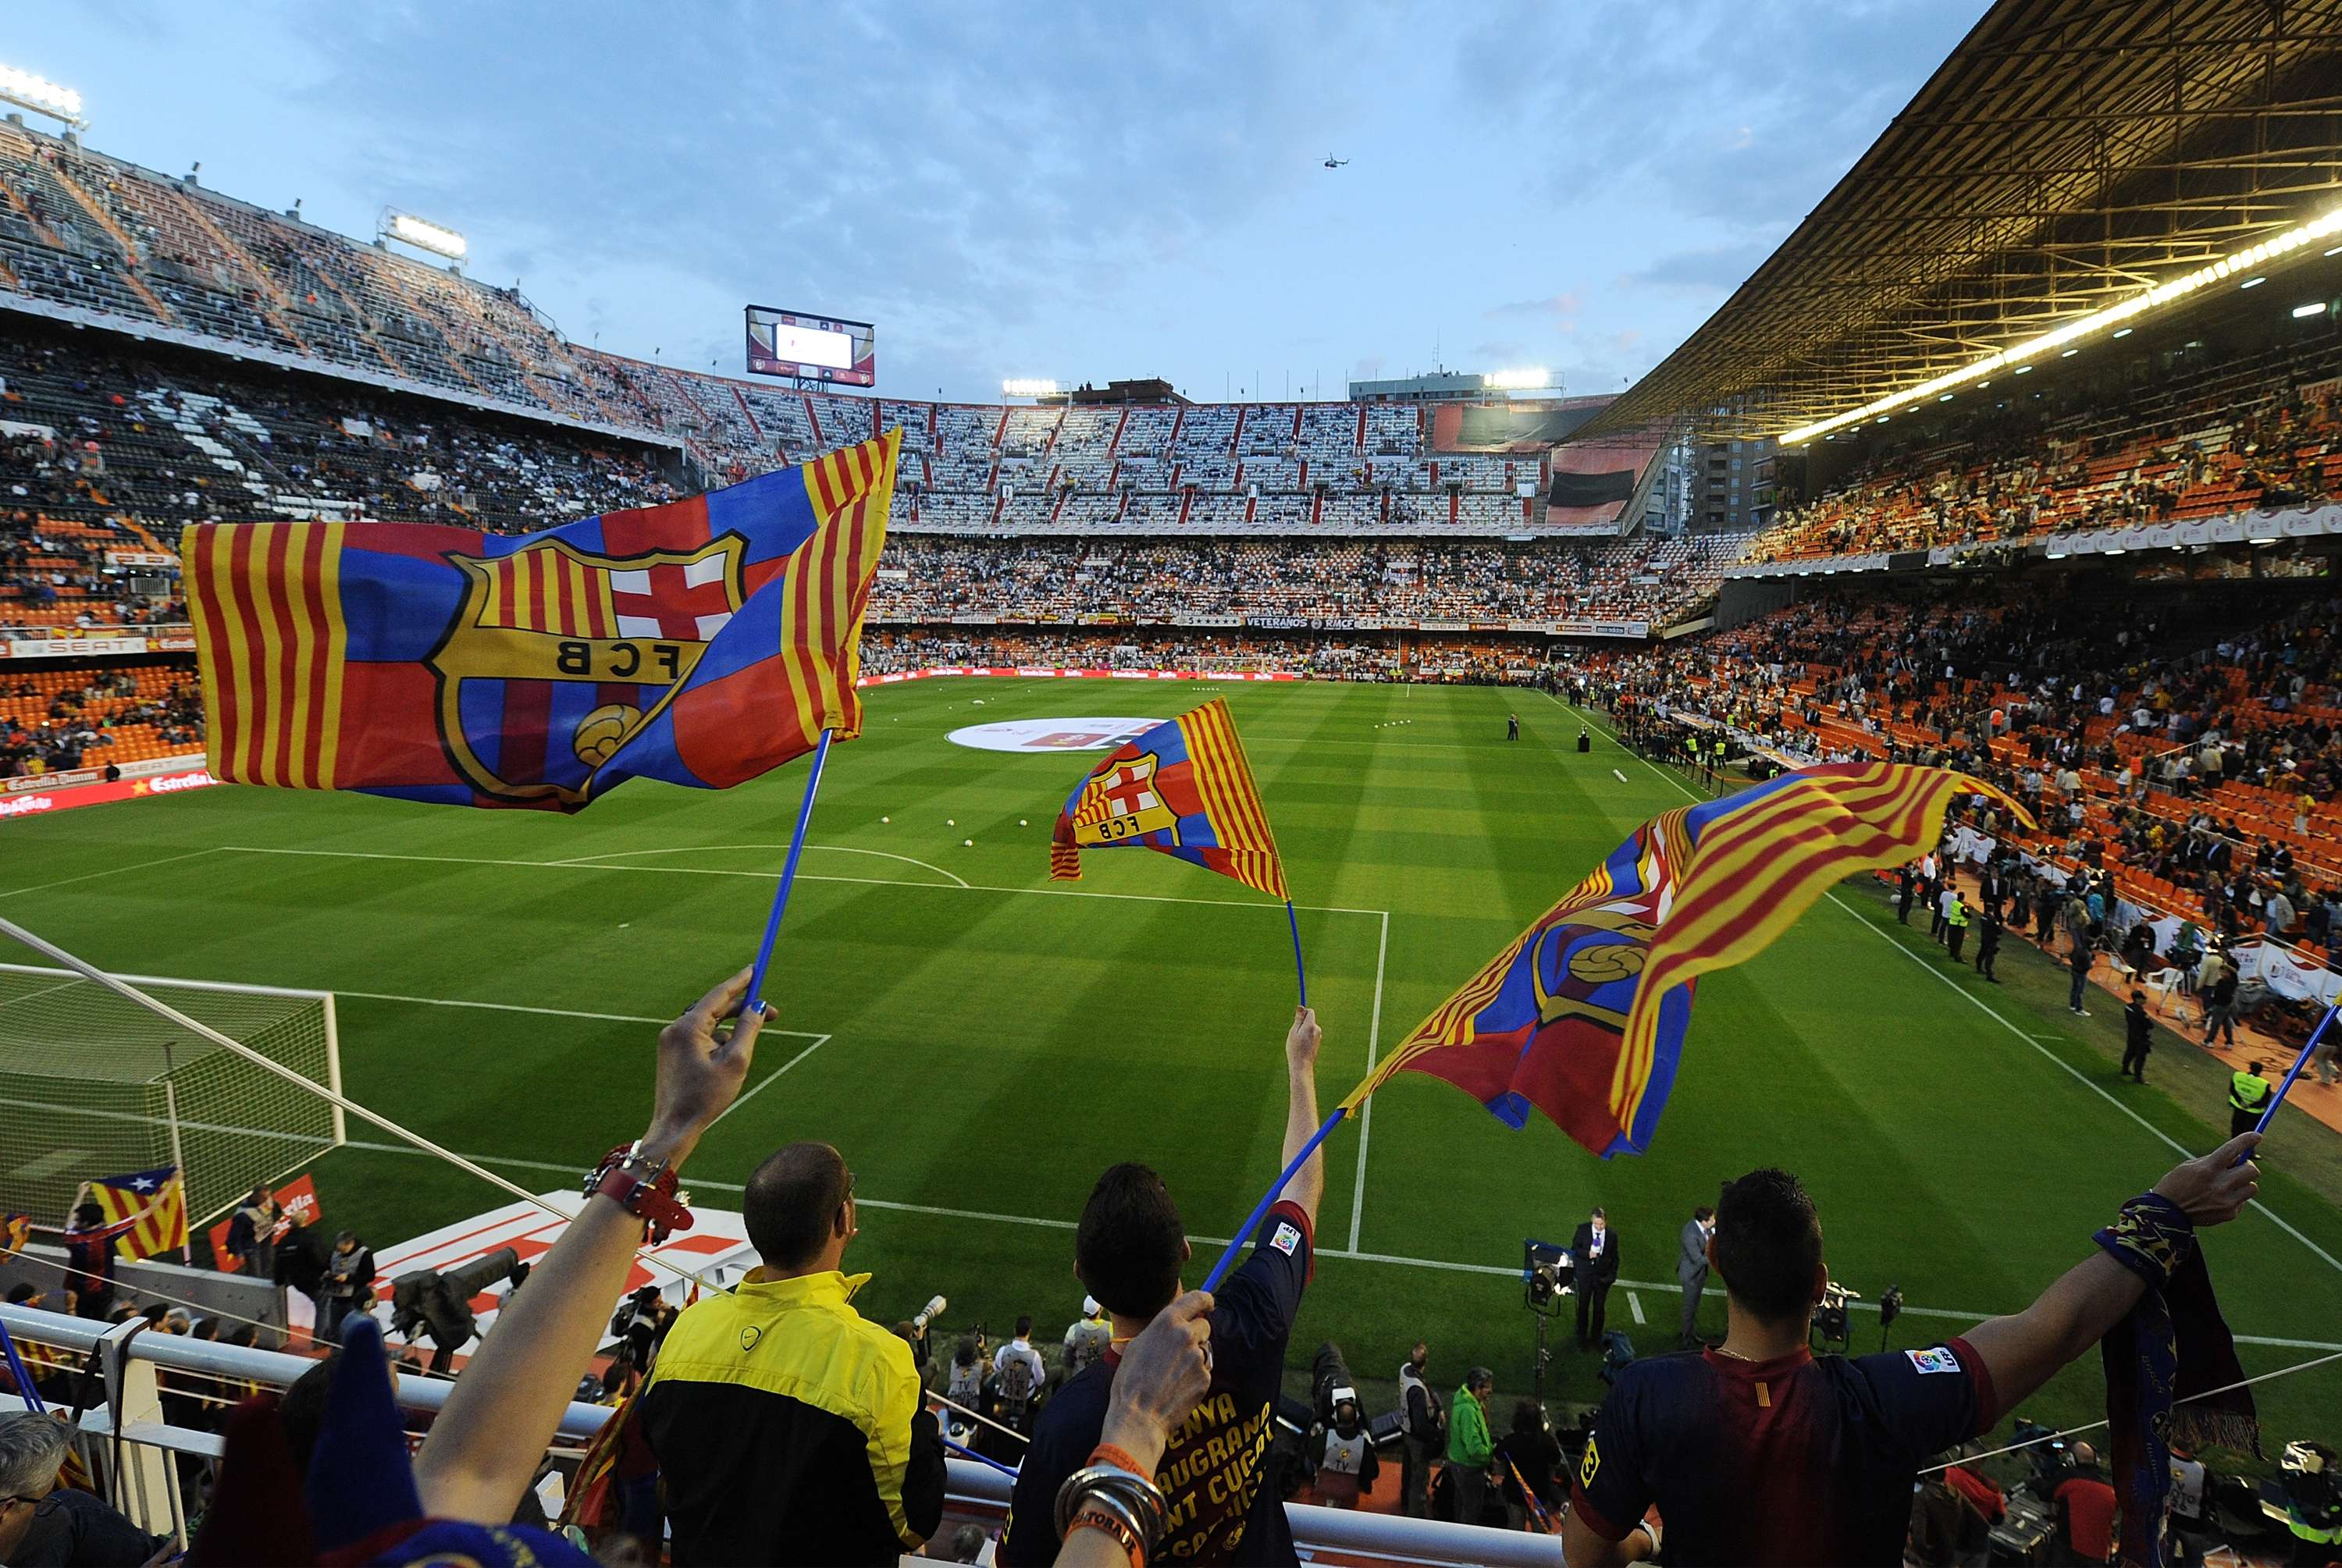 Aficionados del Barcelona durante la final de la Copa del Rey ante el Real Madrid Foto: Getty Images